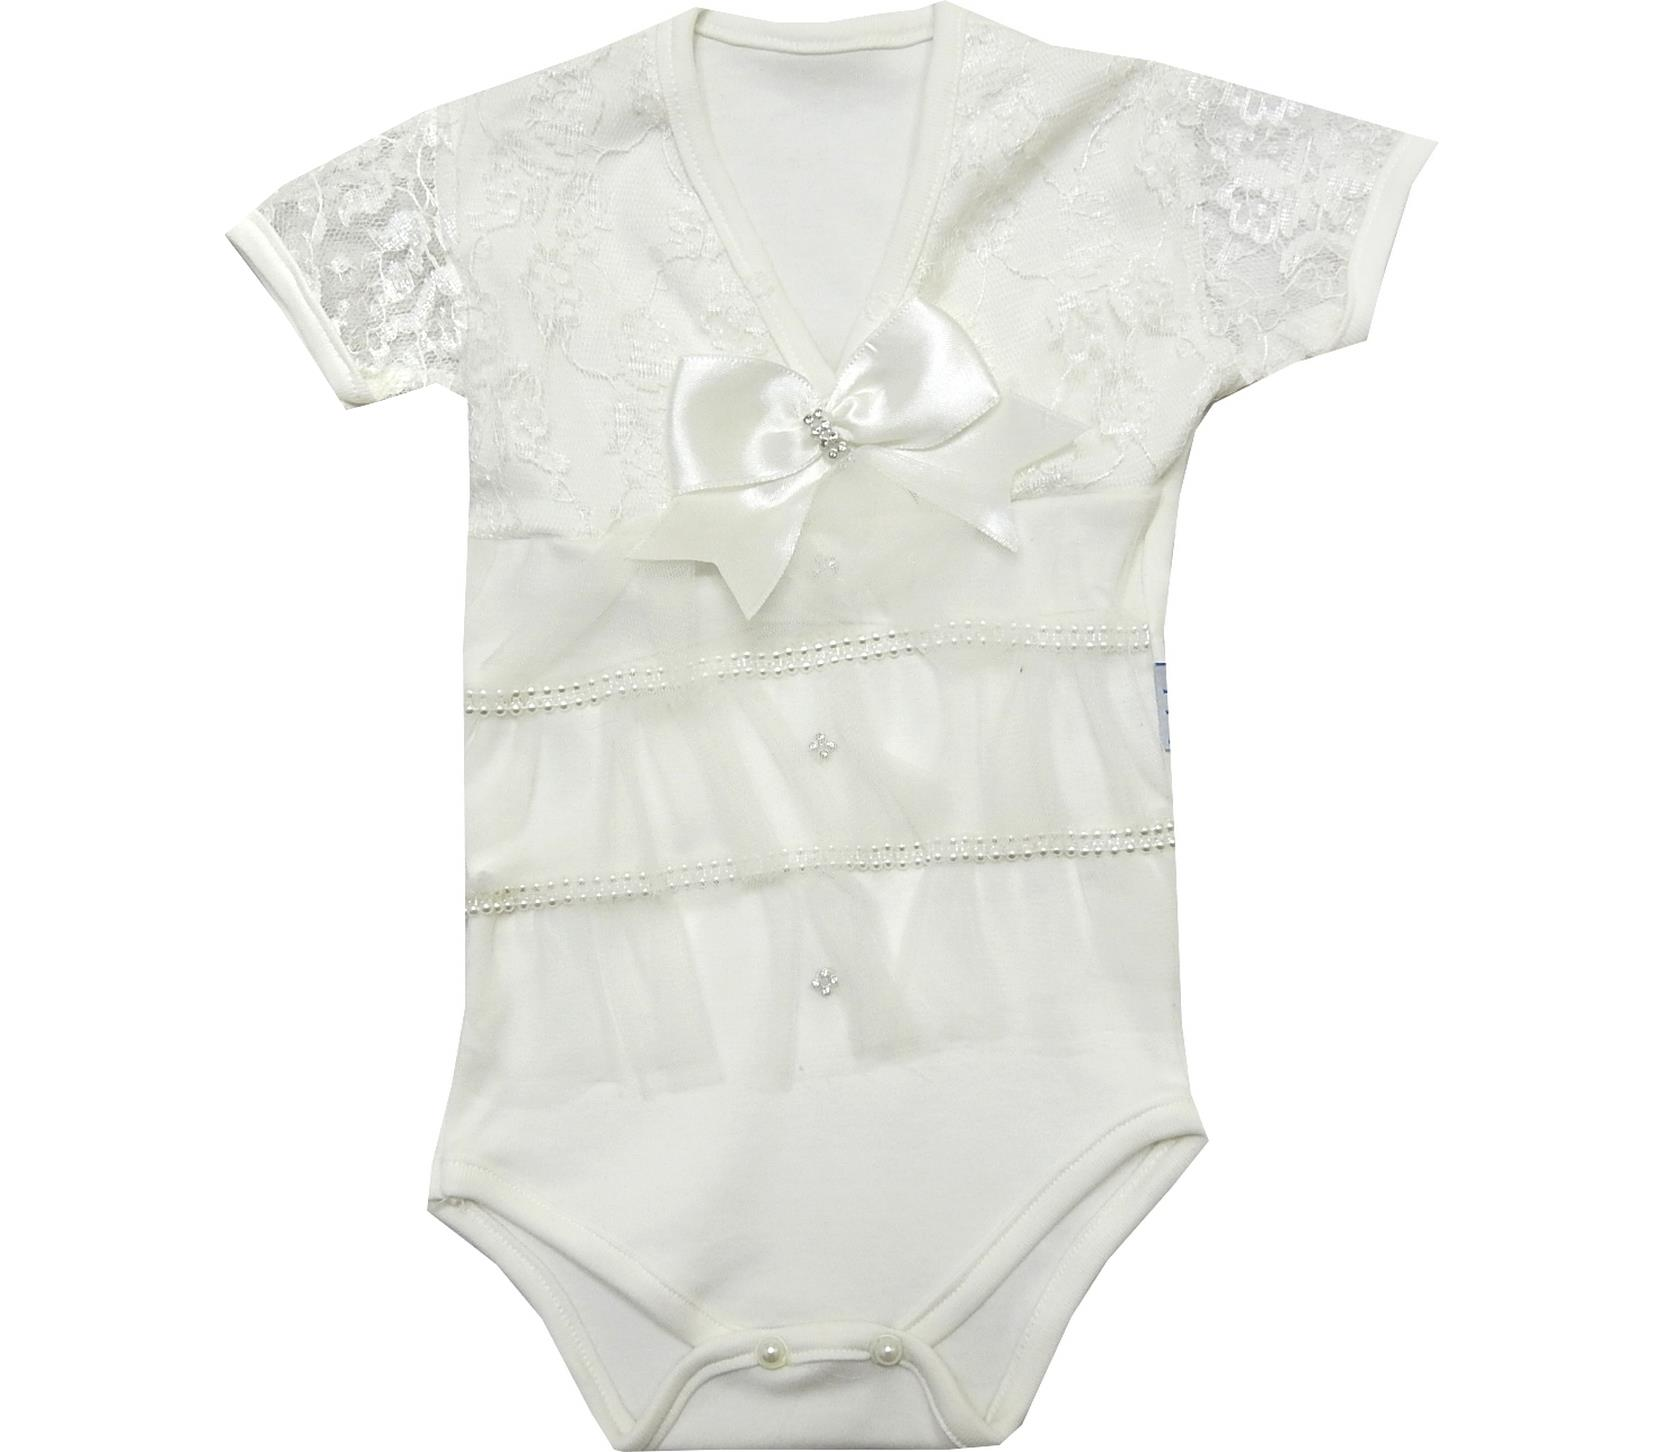 WHOLESALE DECORATIVE RIBBON LACE FABRIC DESIGN BODYSUIT FOR GIRL (0-3-6 MONTH)